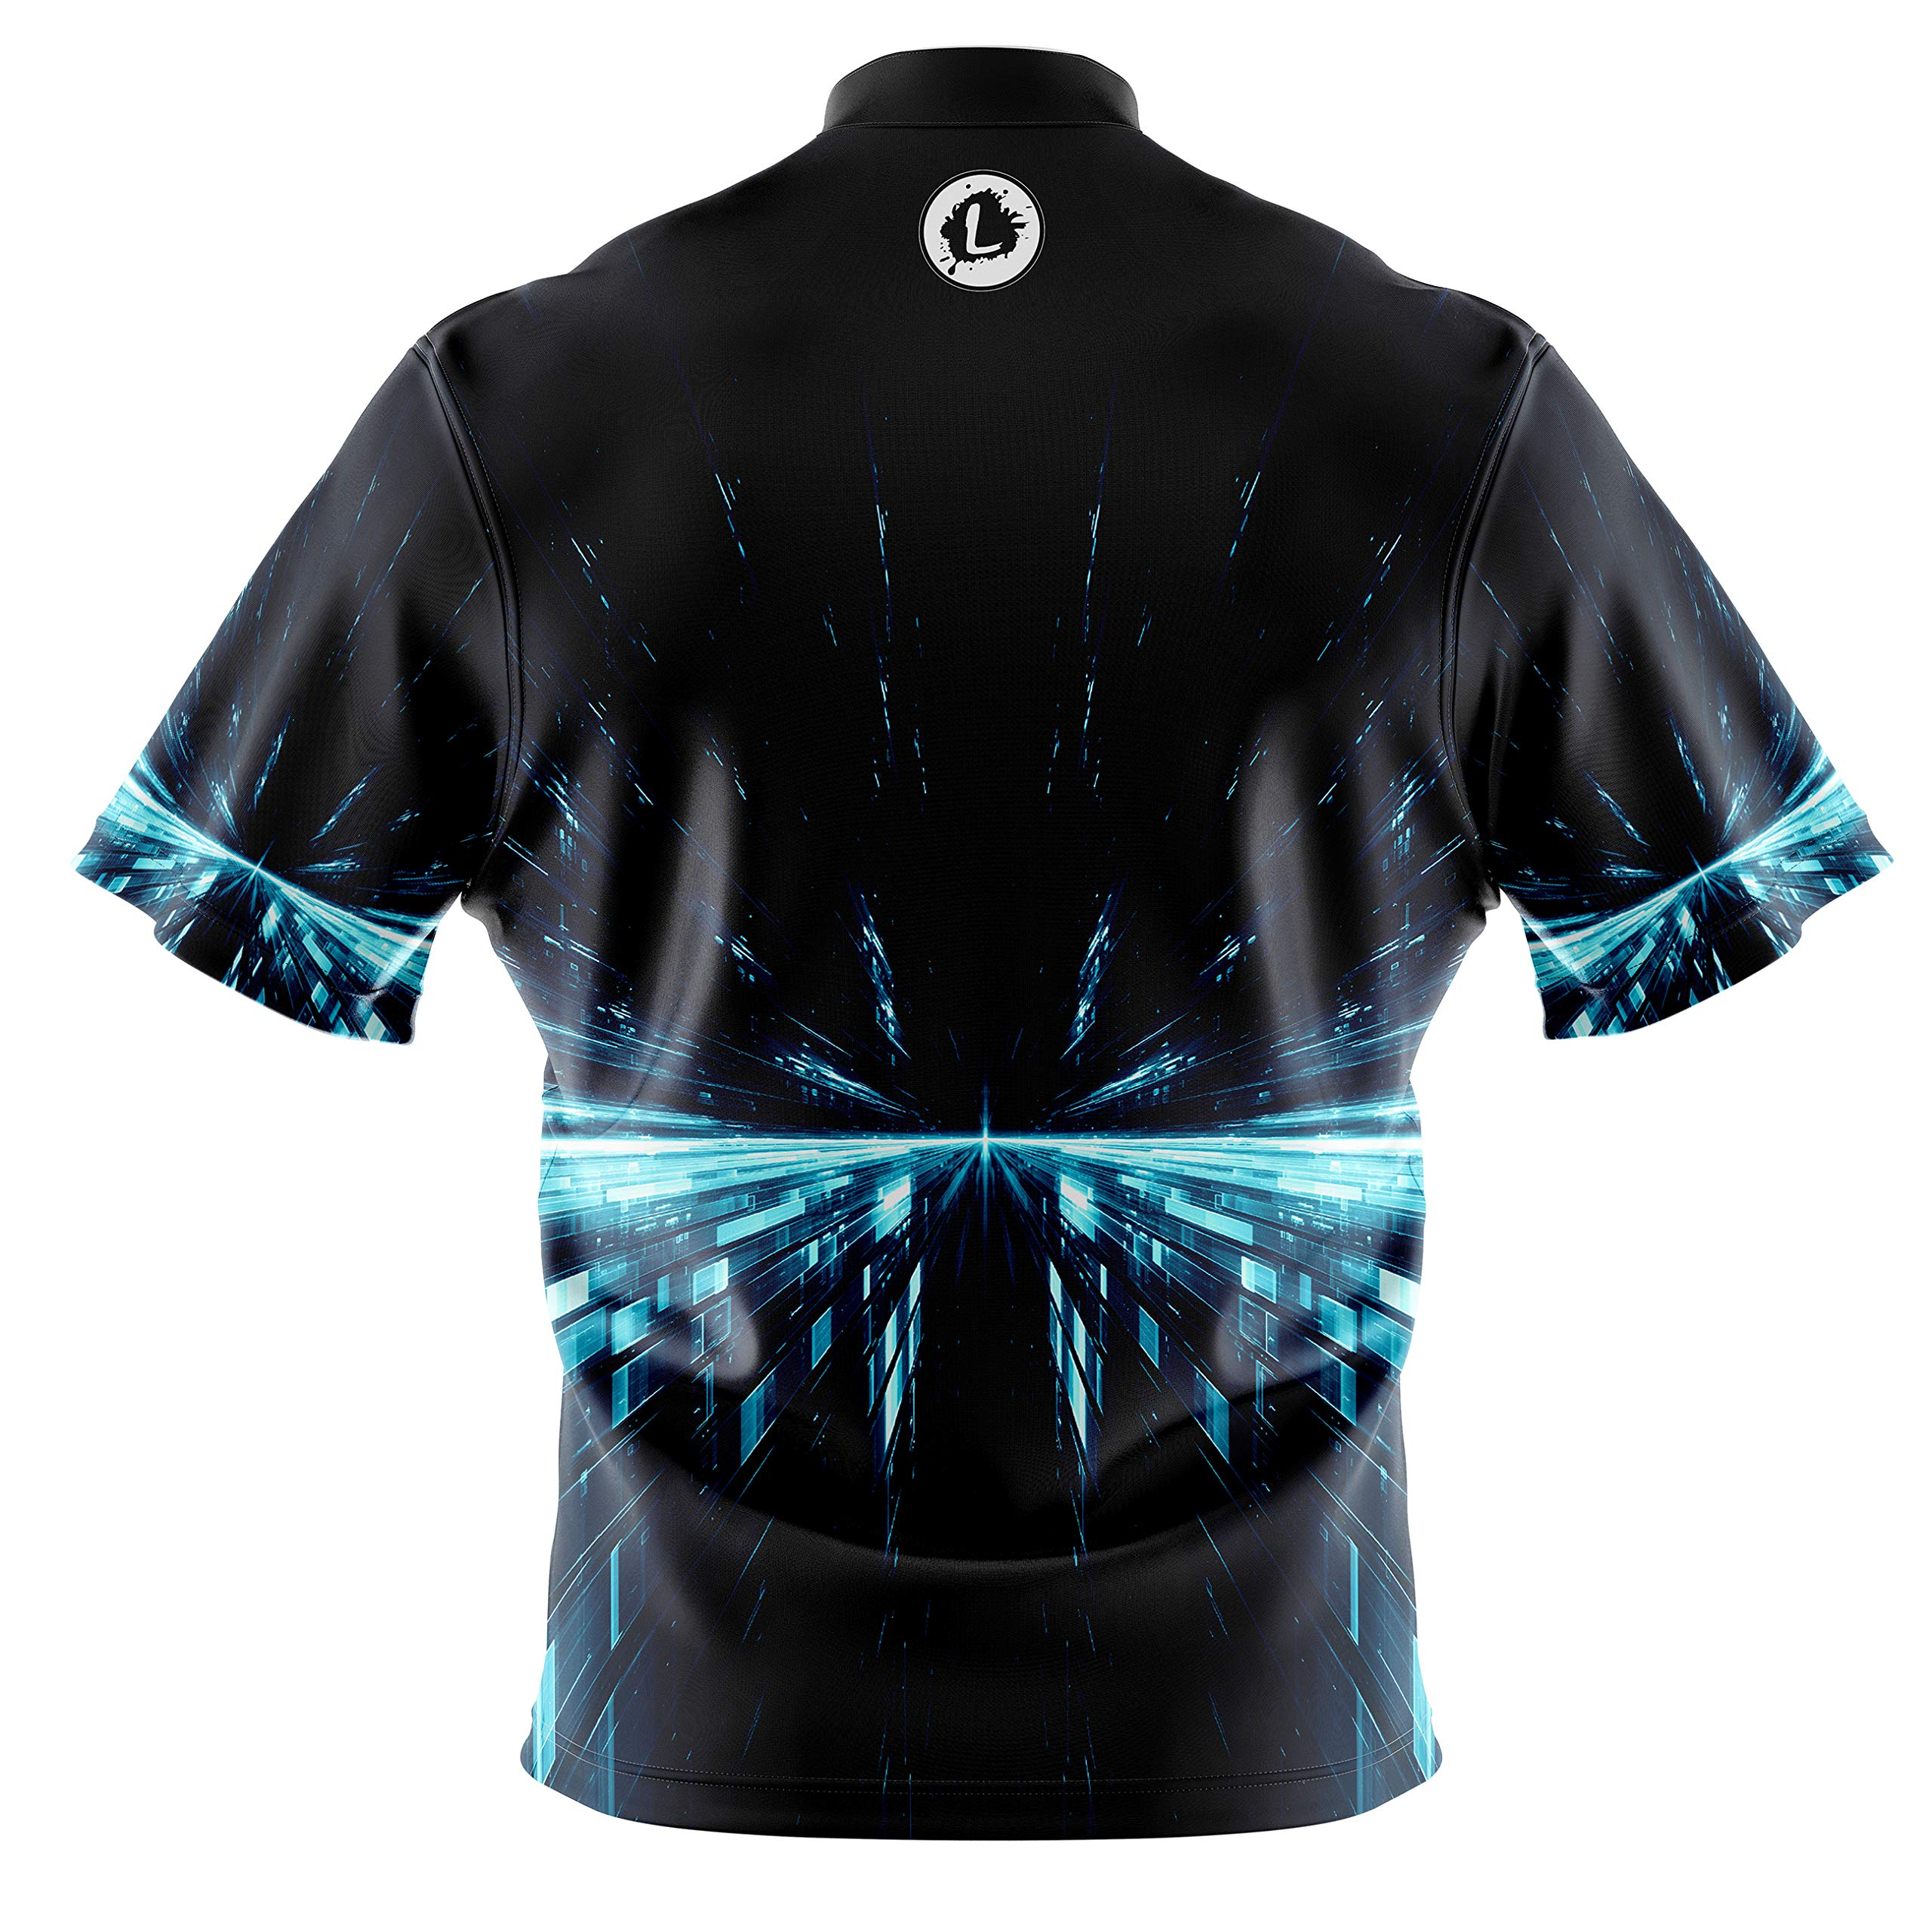 Image #2: Logo Infusion Bowling Dye-Sublimated Jersey (Sash Collar) - Roto Grip Style 0360 - Sizes S-3XL (L) by Logo Infusion